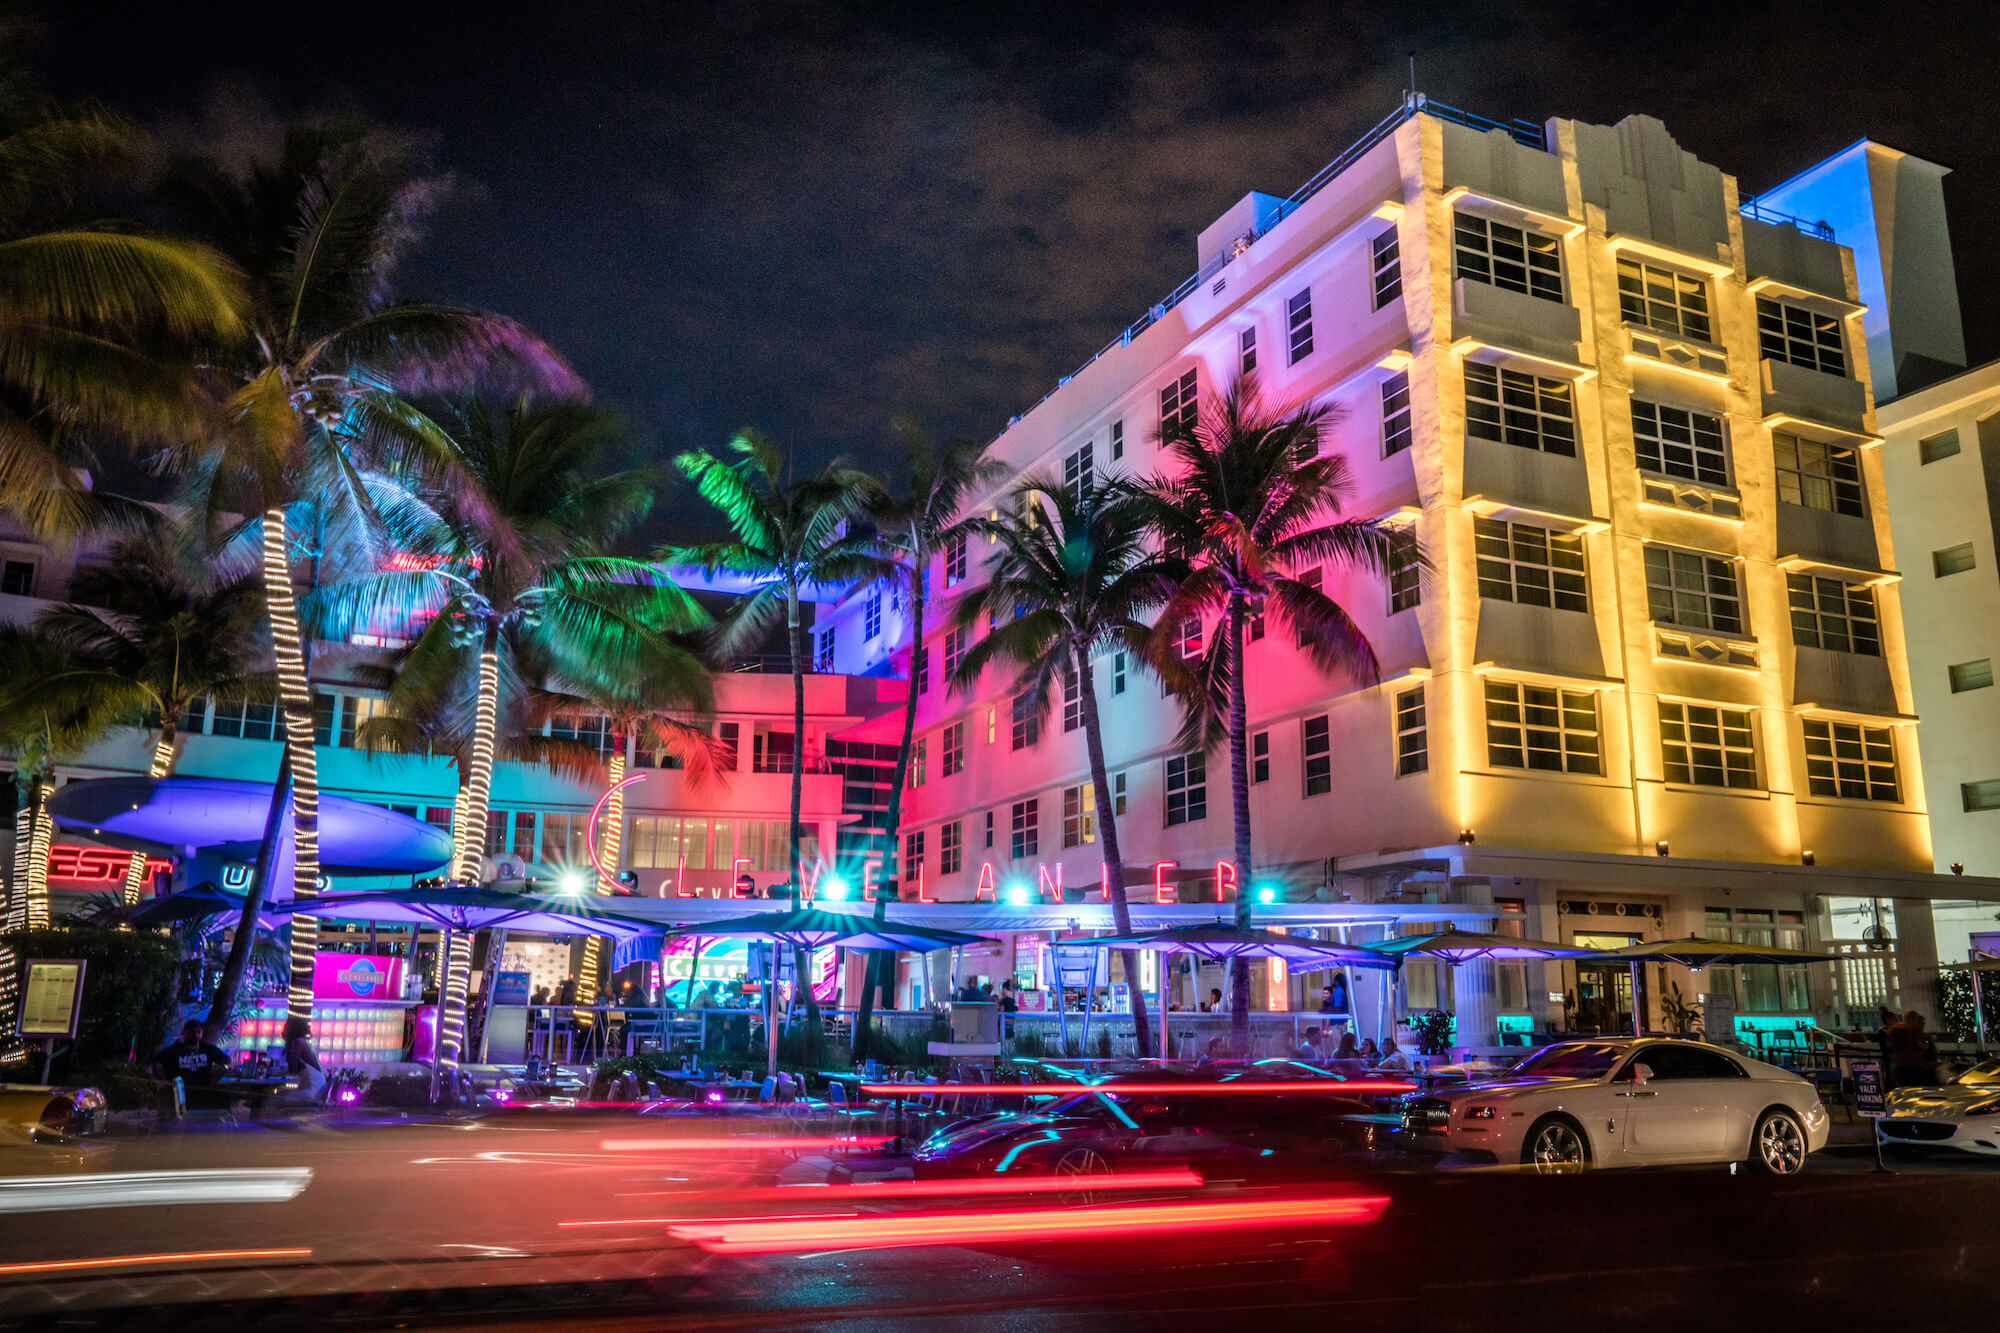 Neon Lights on South Beach Miami